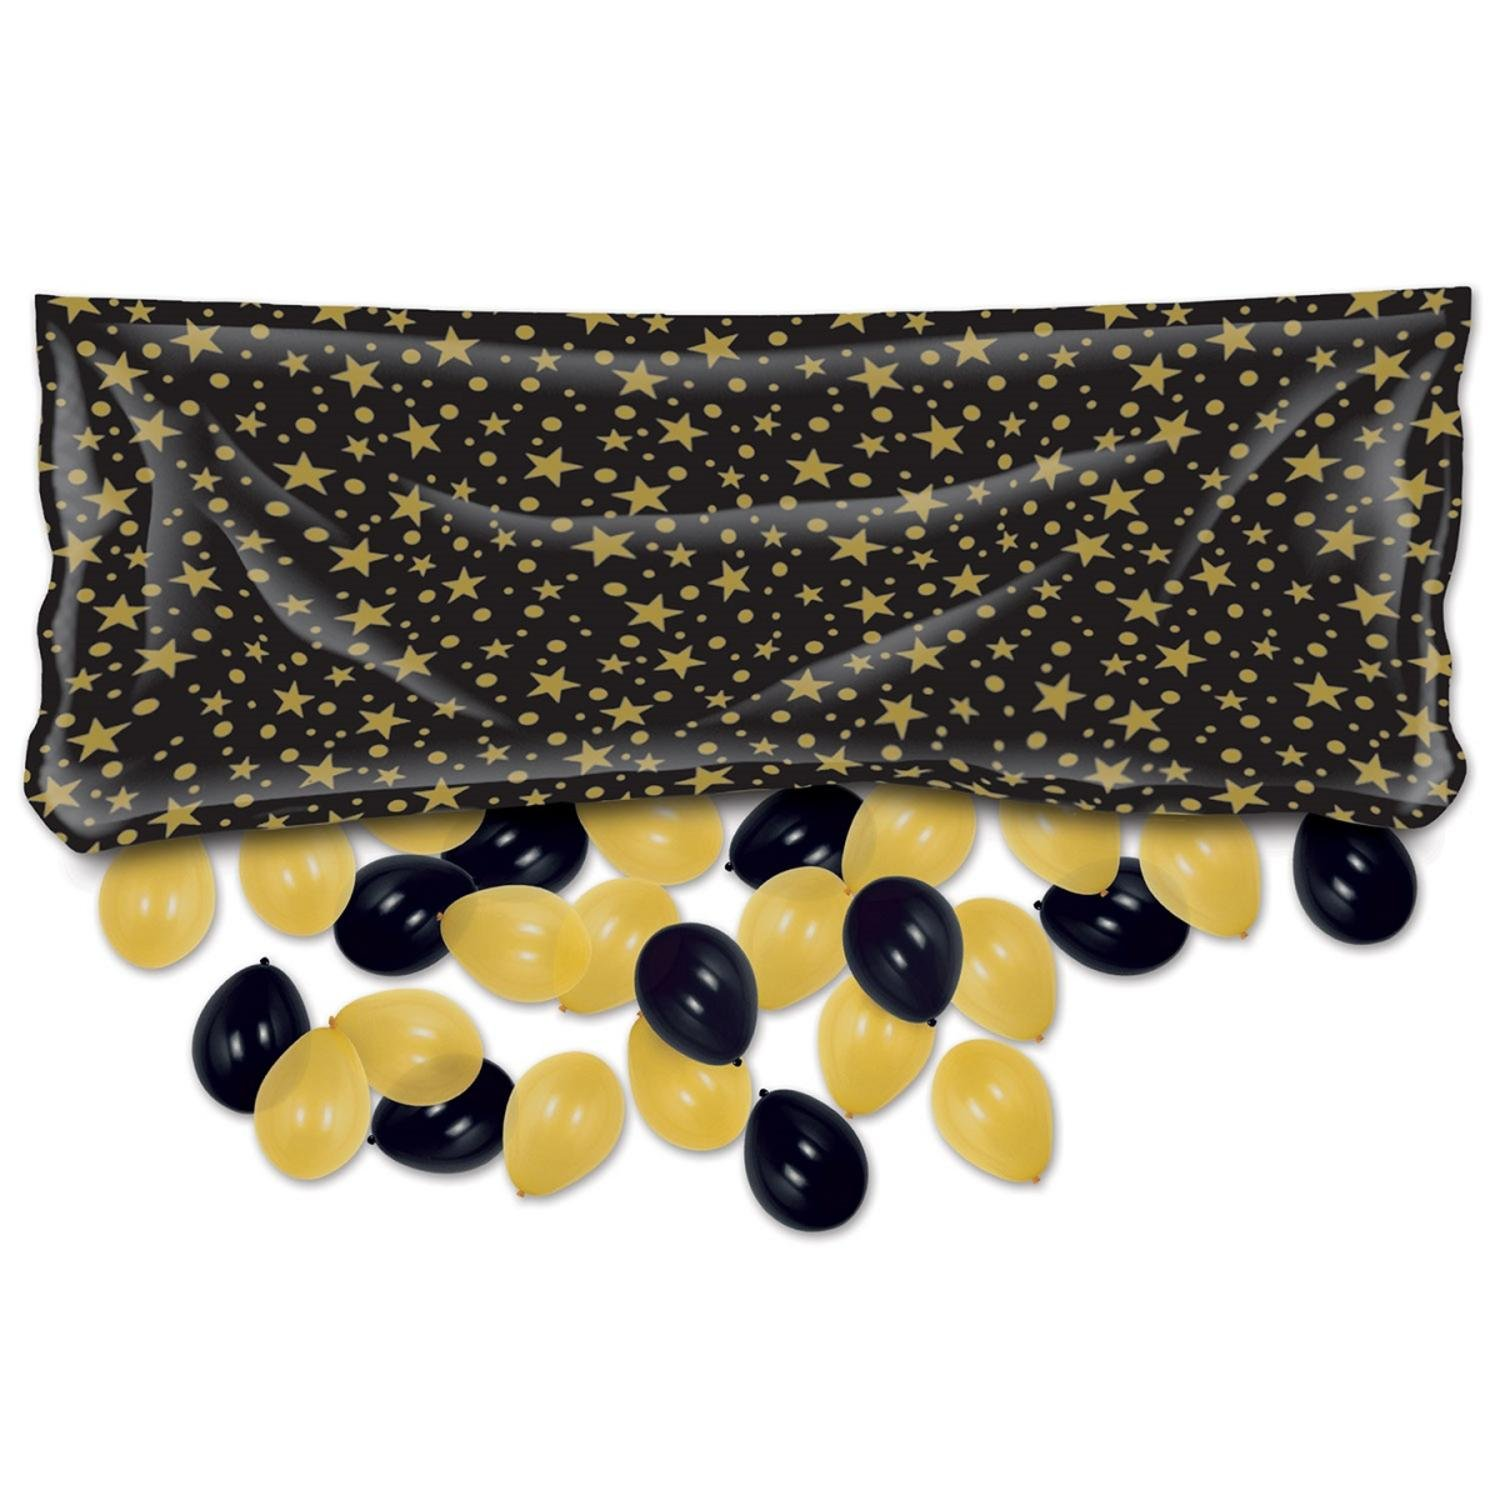 Club Pack of 12 Black and Gold Decorative Party Balloon Bags 80'' by Party Central